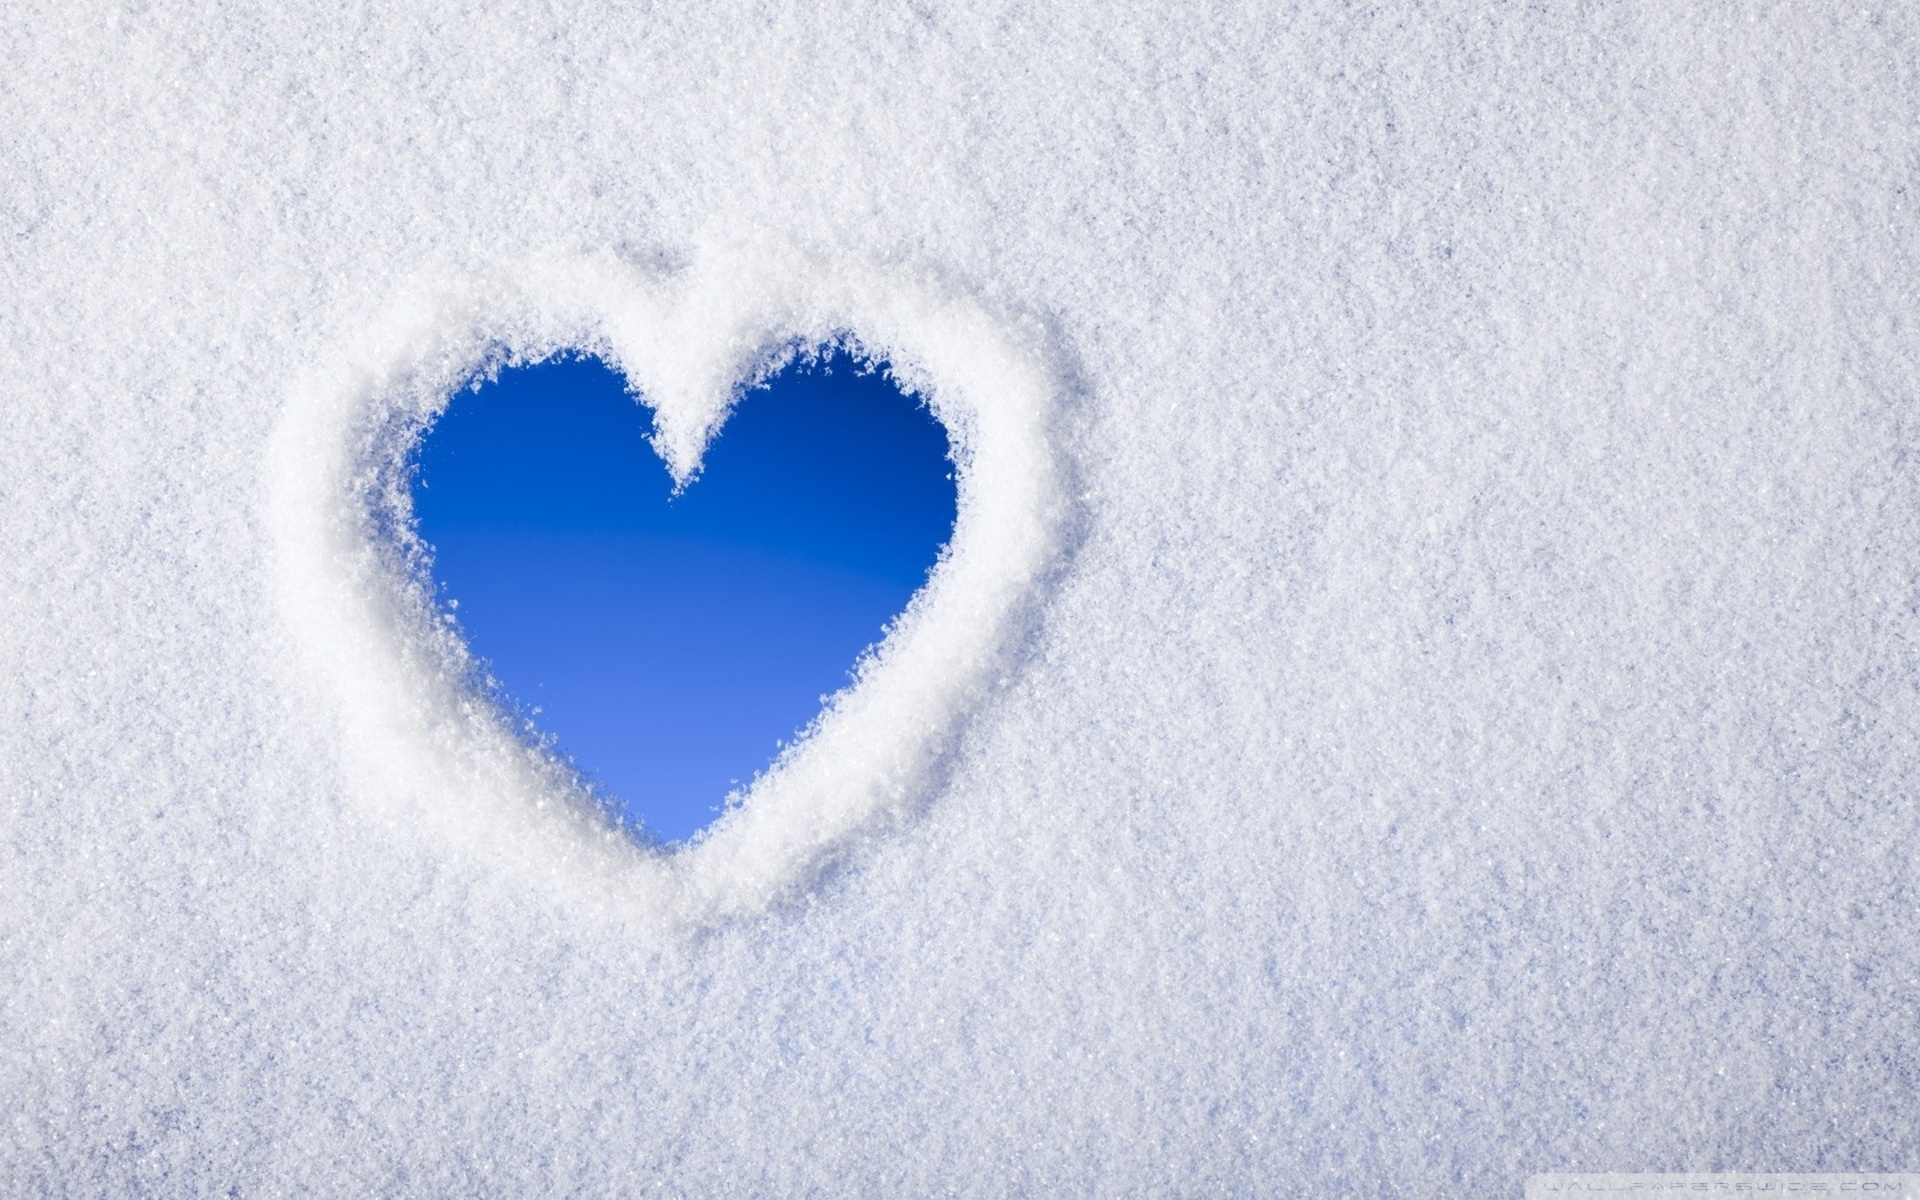 Snow Love Wallpaper